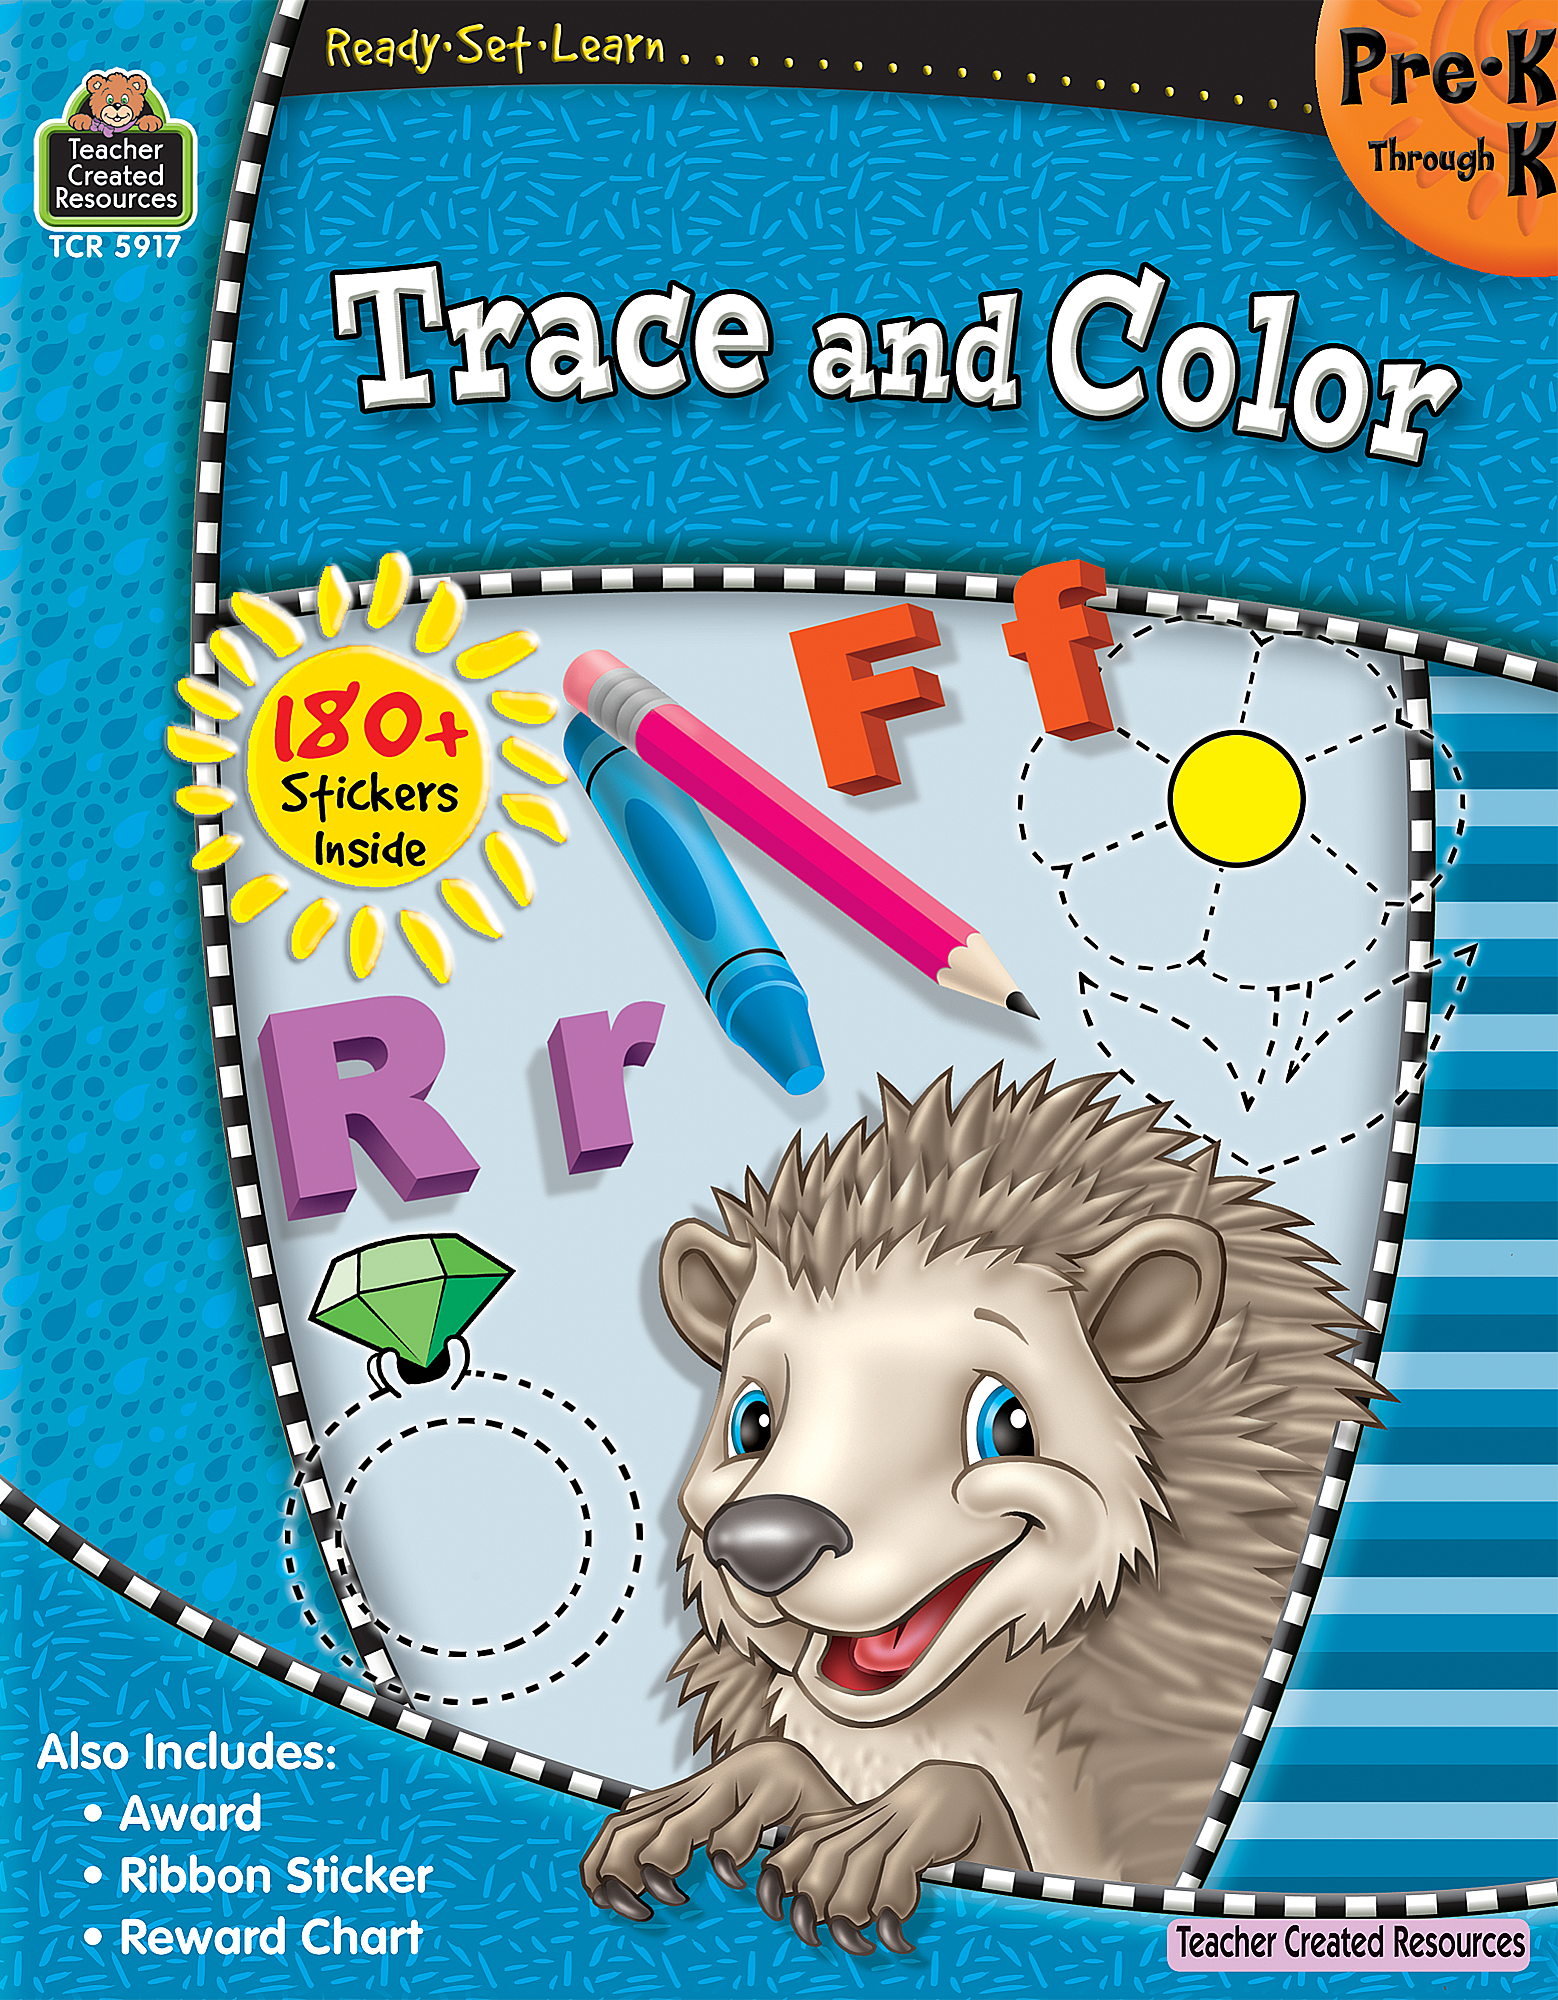 Color games for pre k - Color Games For Pre K Ready Set Learn Trace And Color Prek K Tcr5917 Products